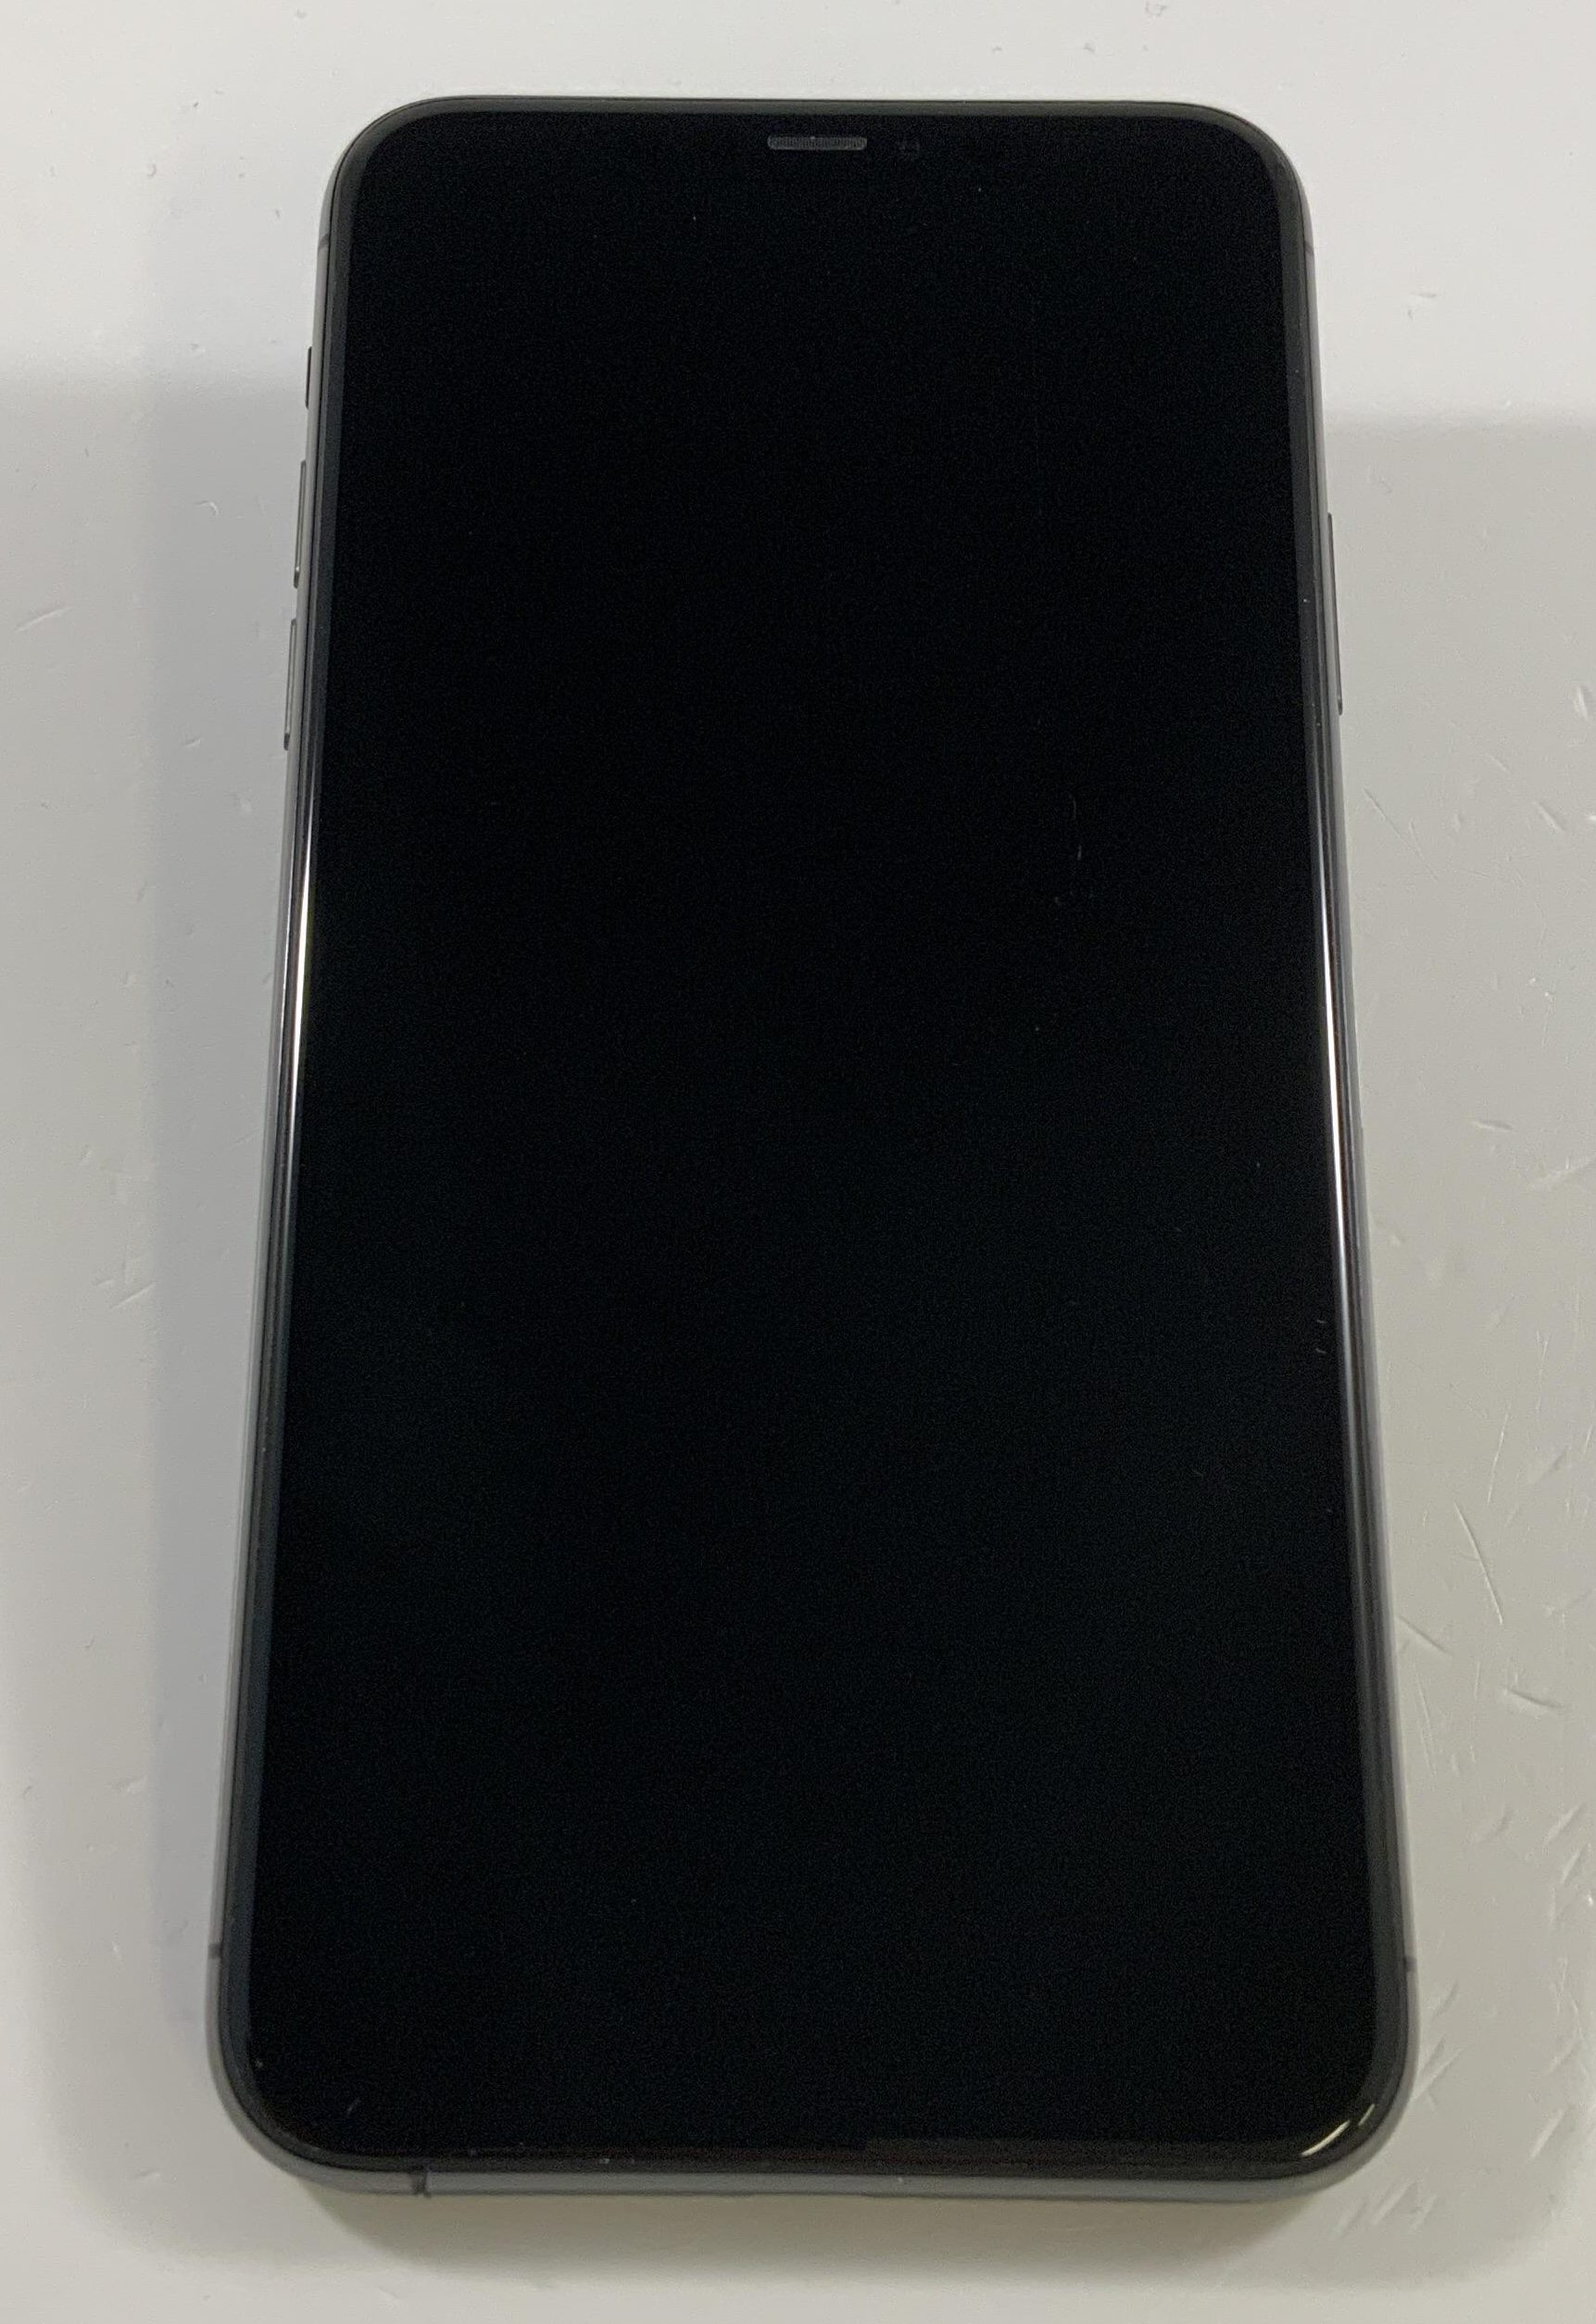 iPhone 11 Pro Max 256GB, 256GB, Space Gray, immagine 1